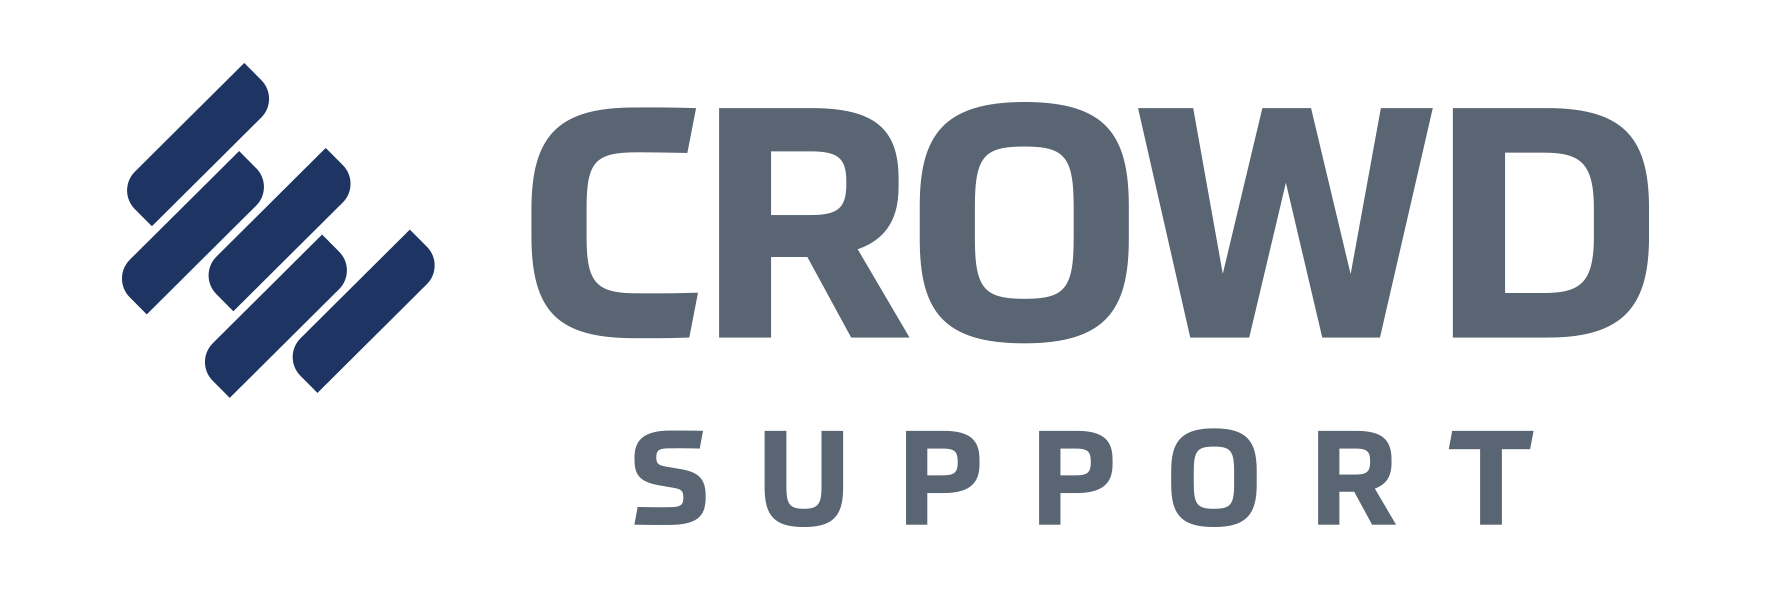 logo Crowd support